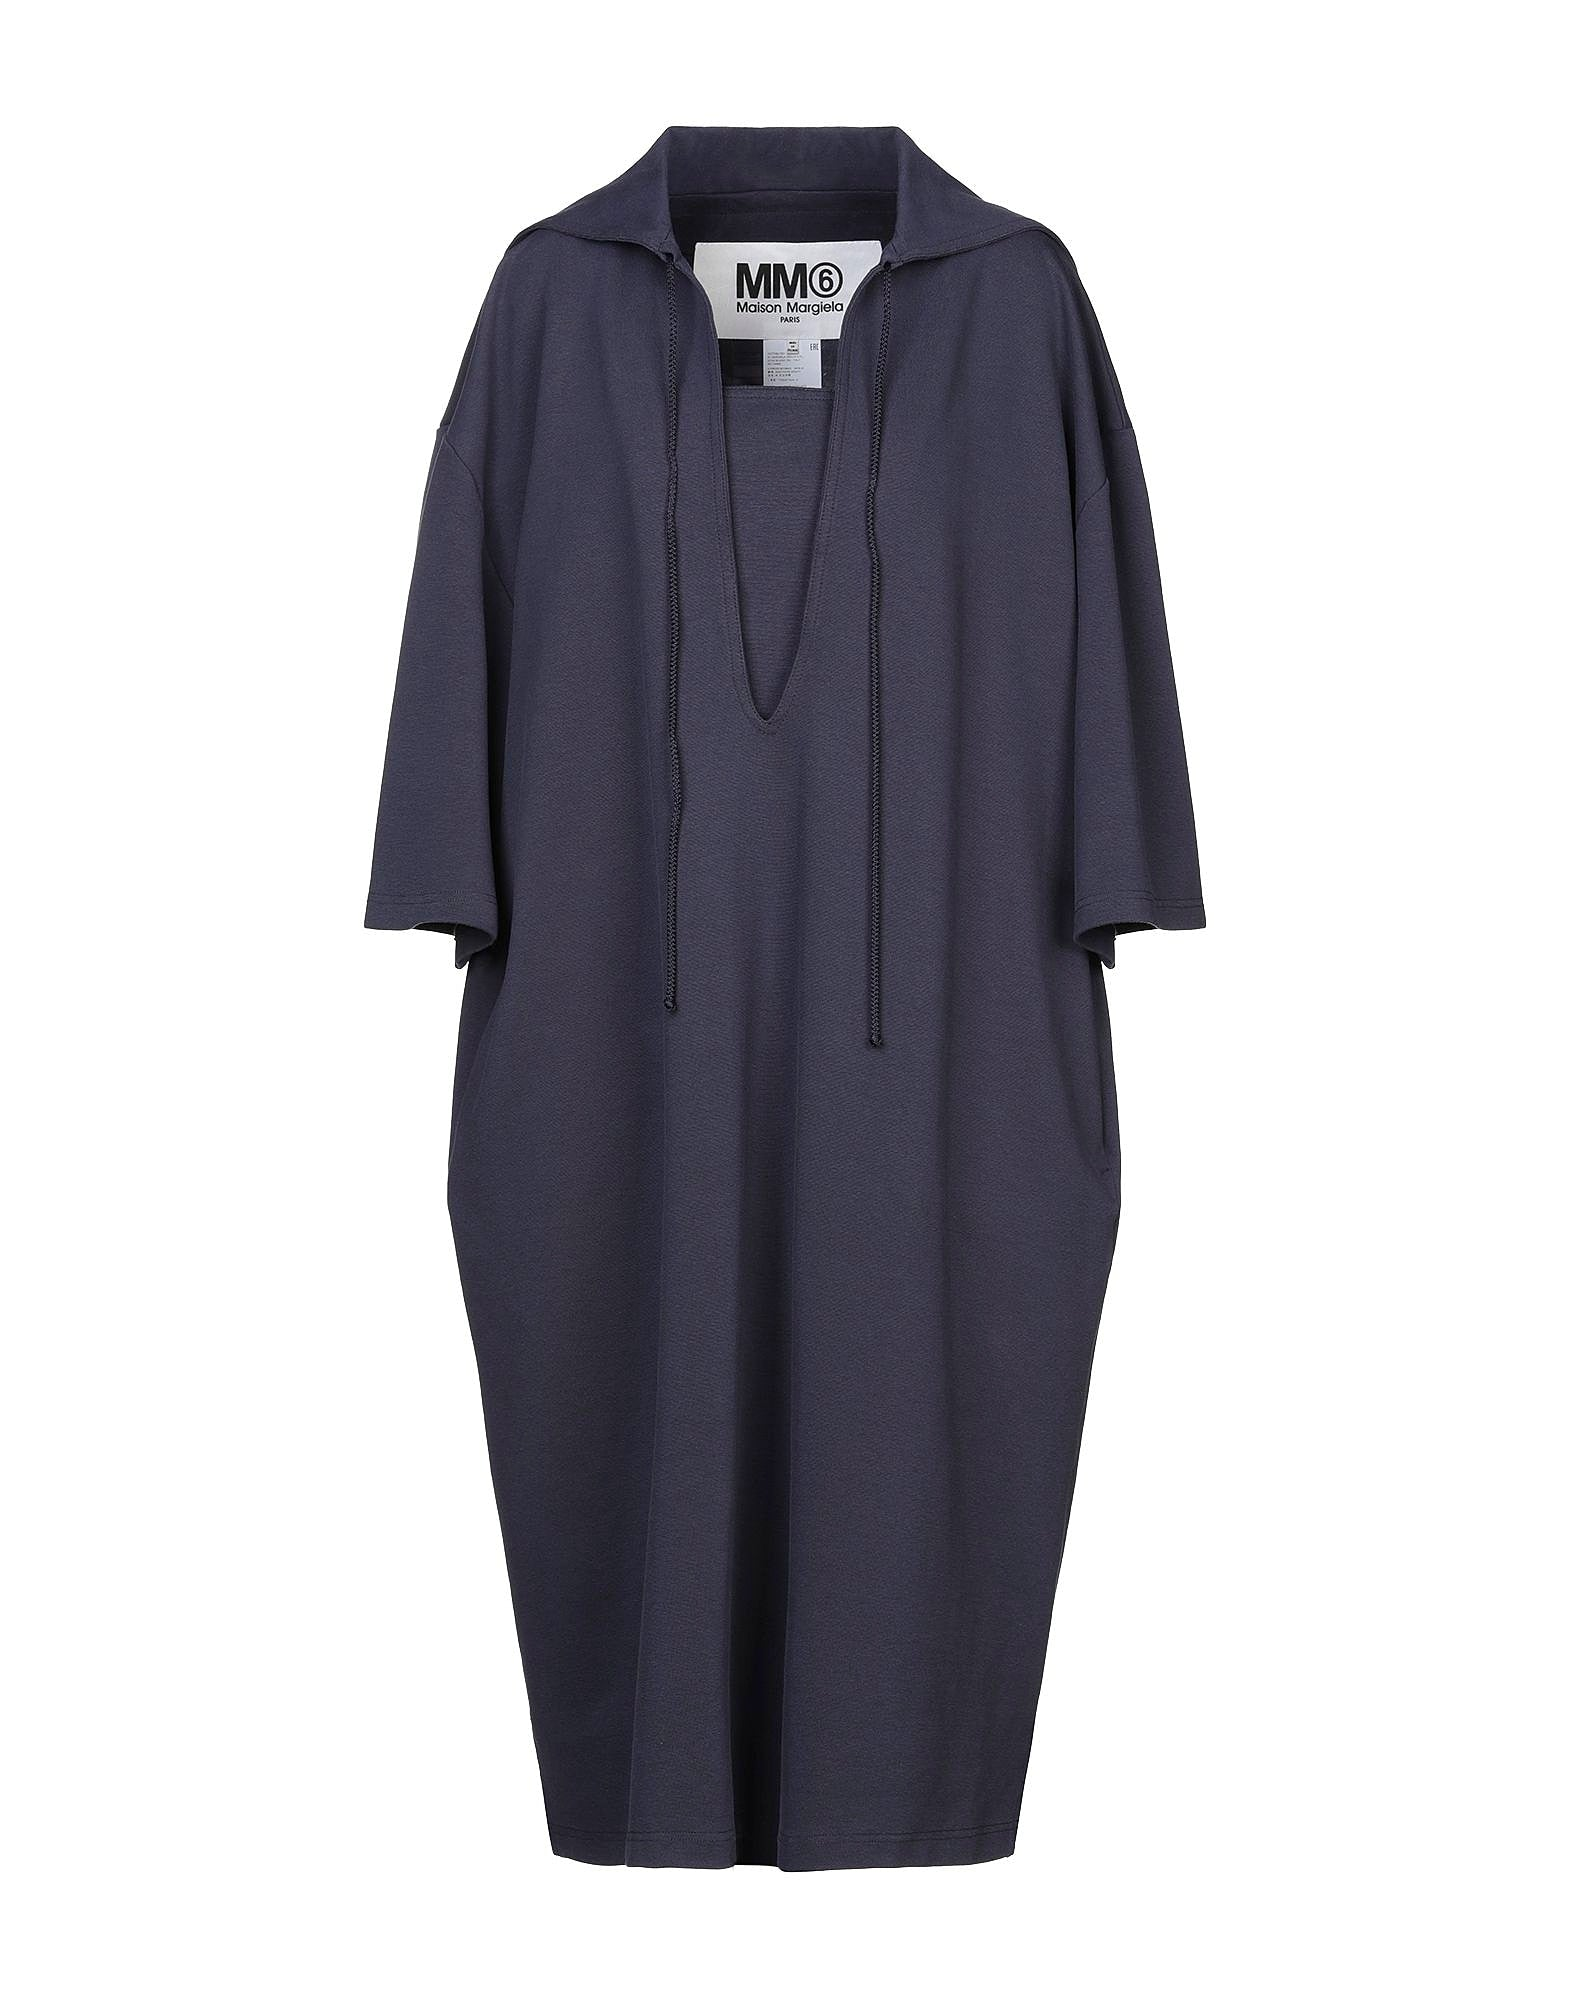 MM6 MAISON MARGIELA Knee-length dress